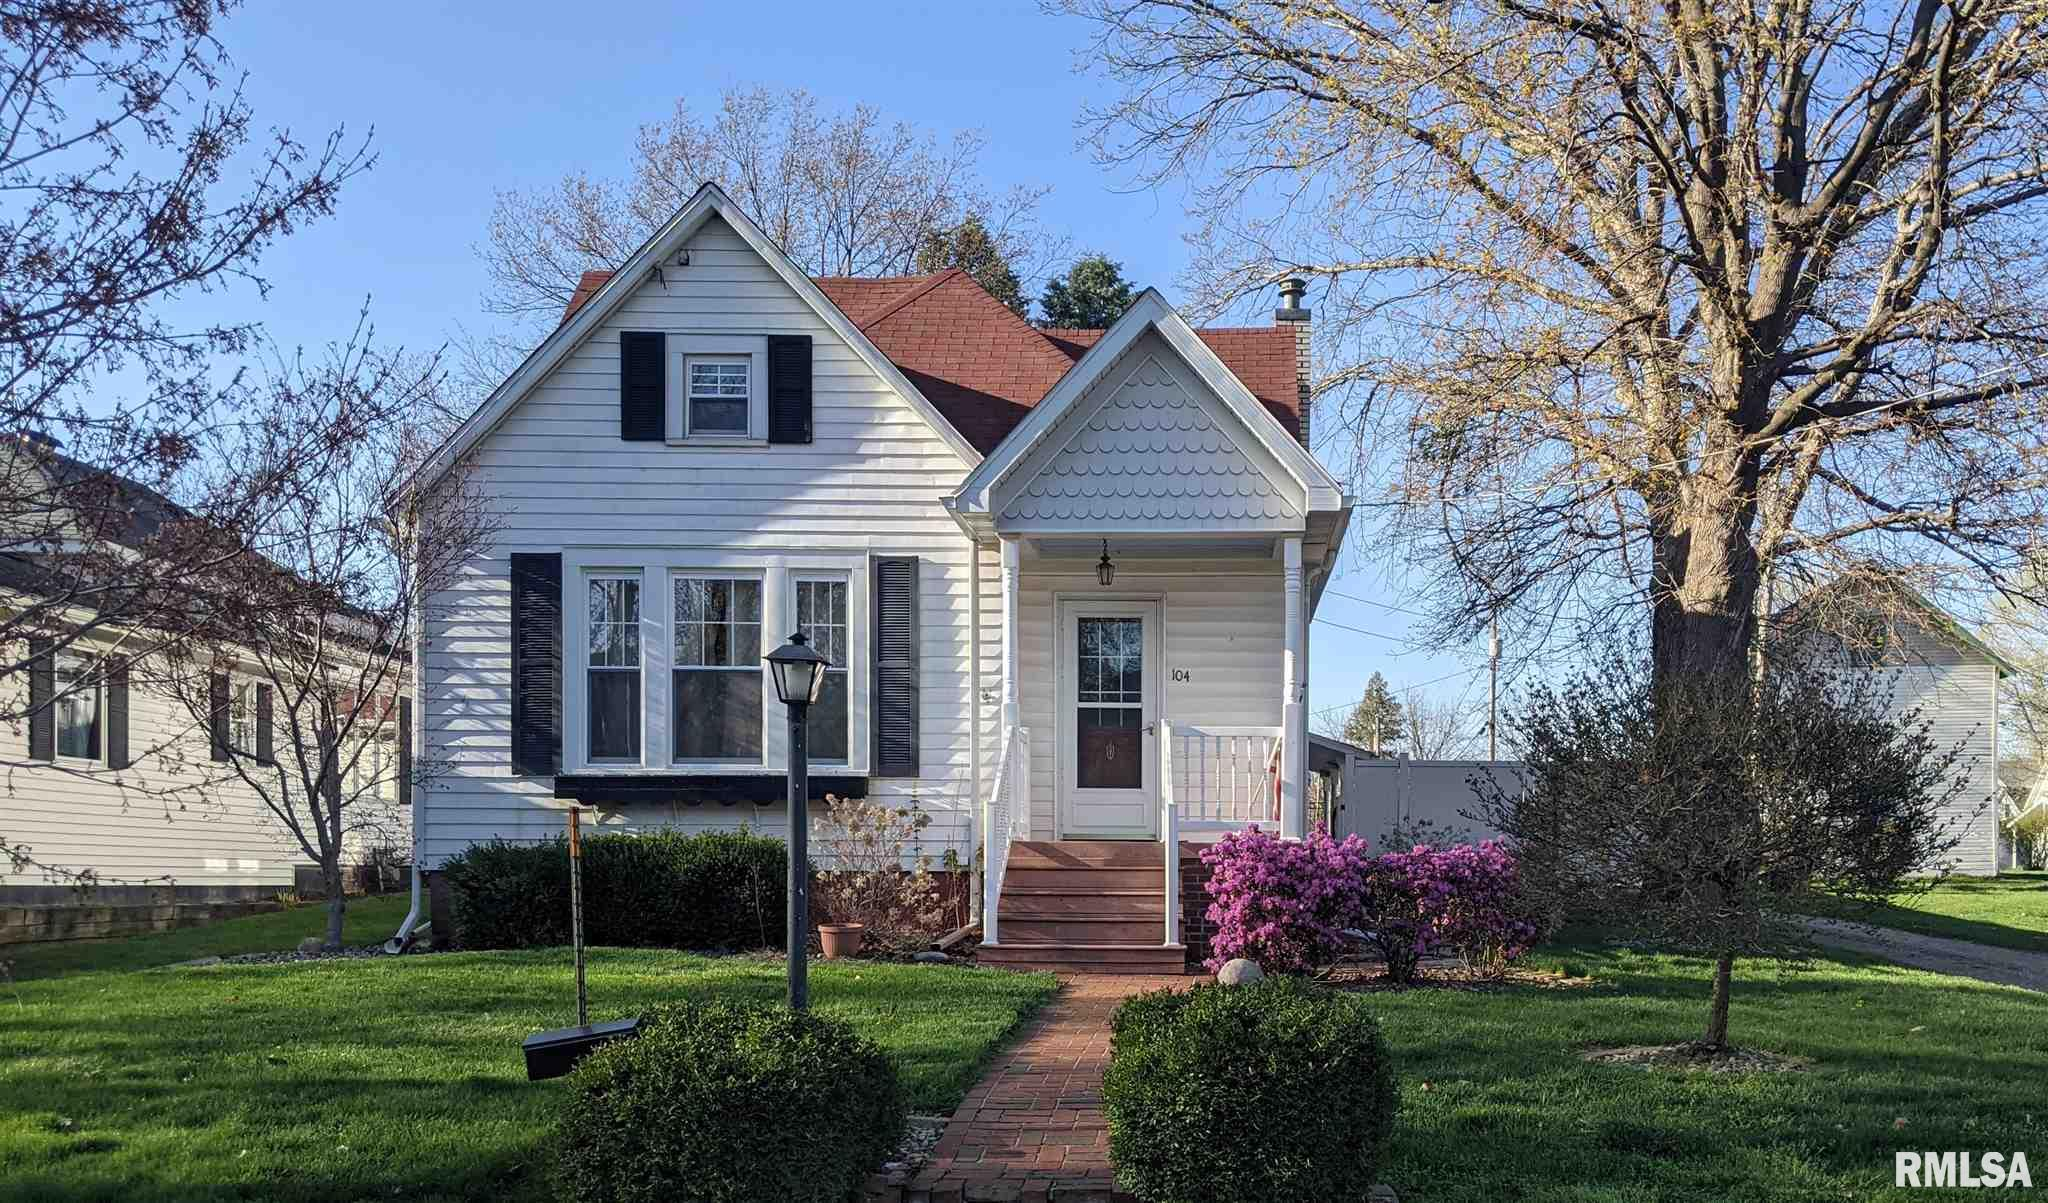 104 W BUTLER Property Photo - Wyoming, IL real estate listing